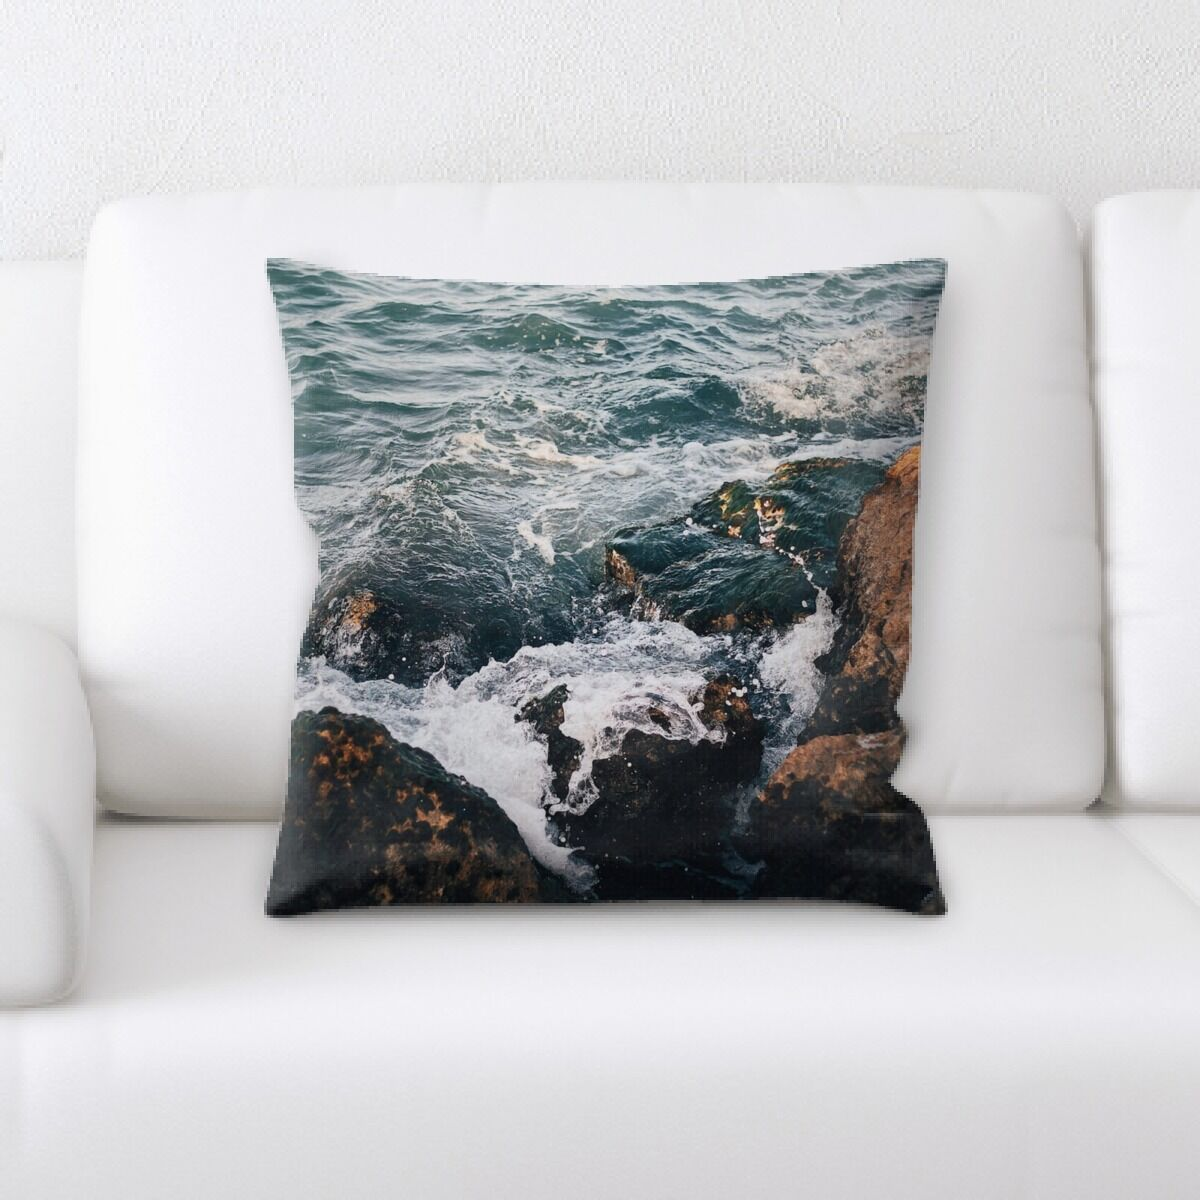 Skyline Mountain and Cliffs (119) Throw Pillow